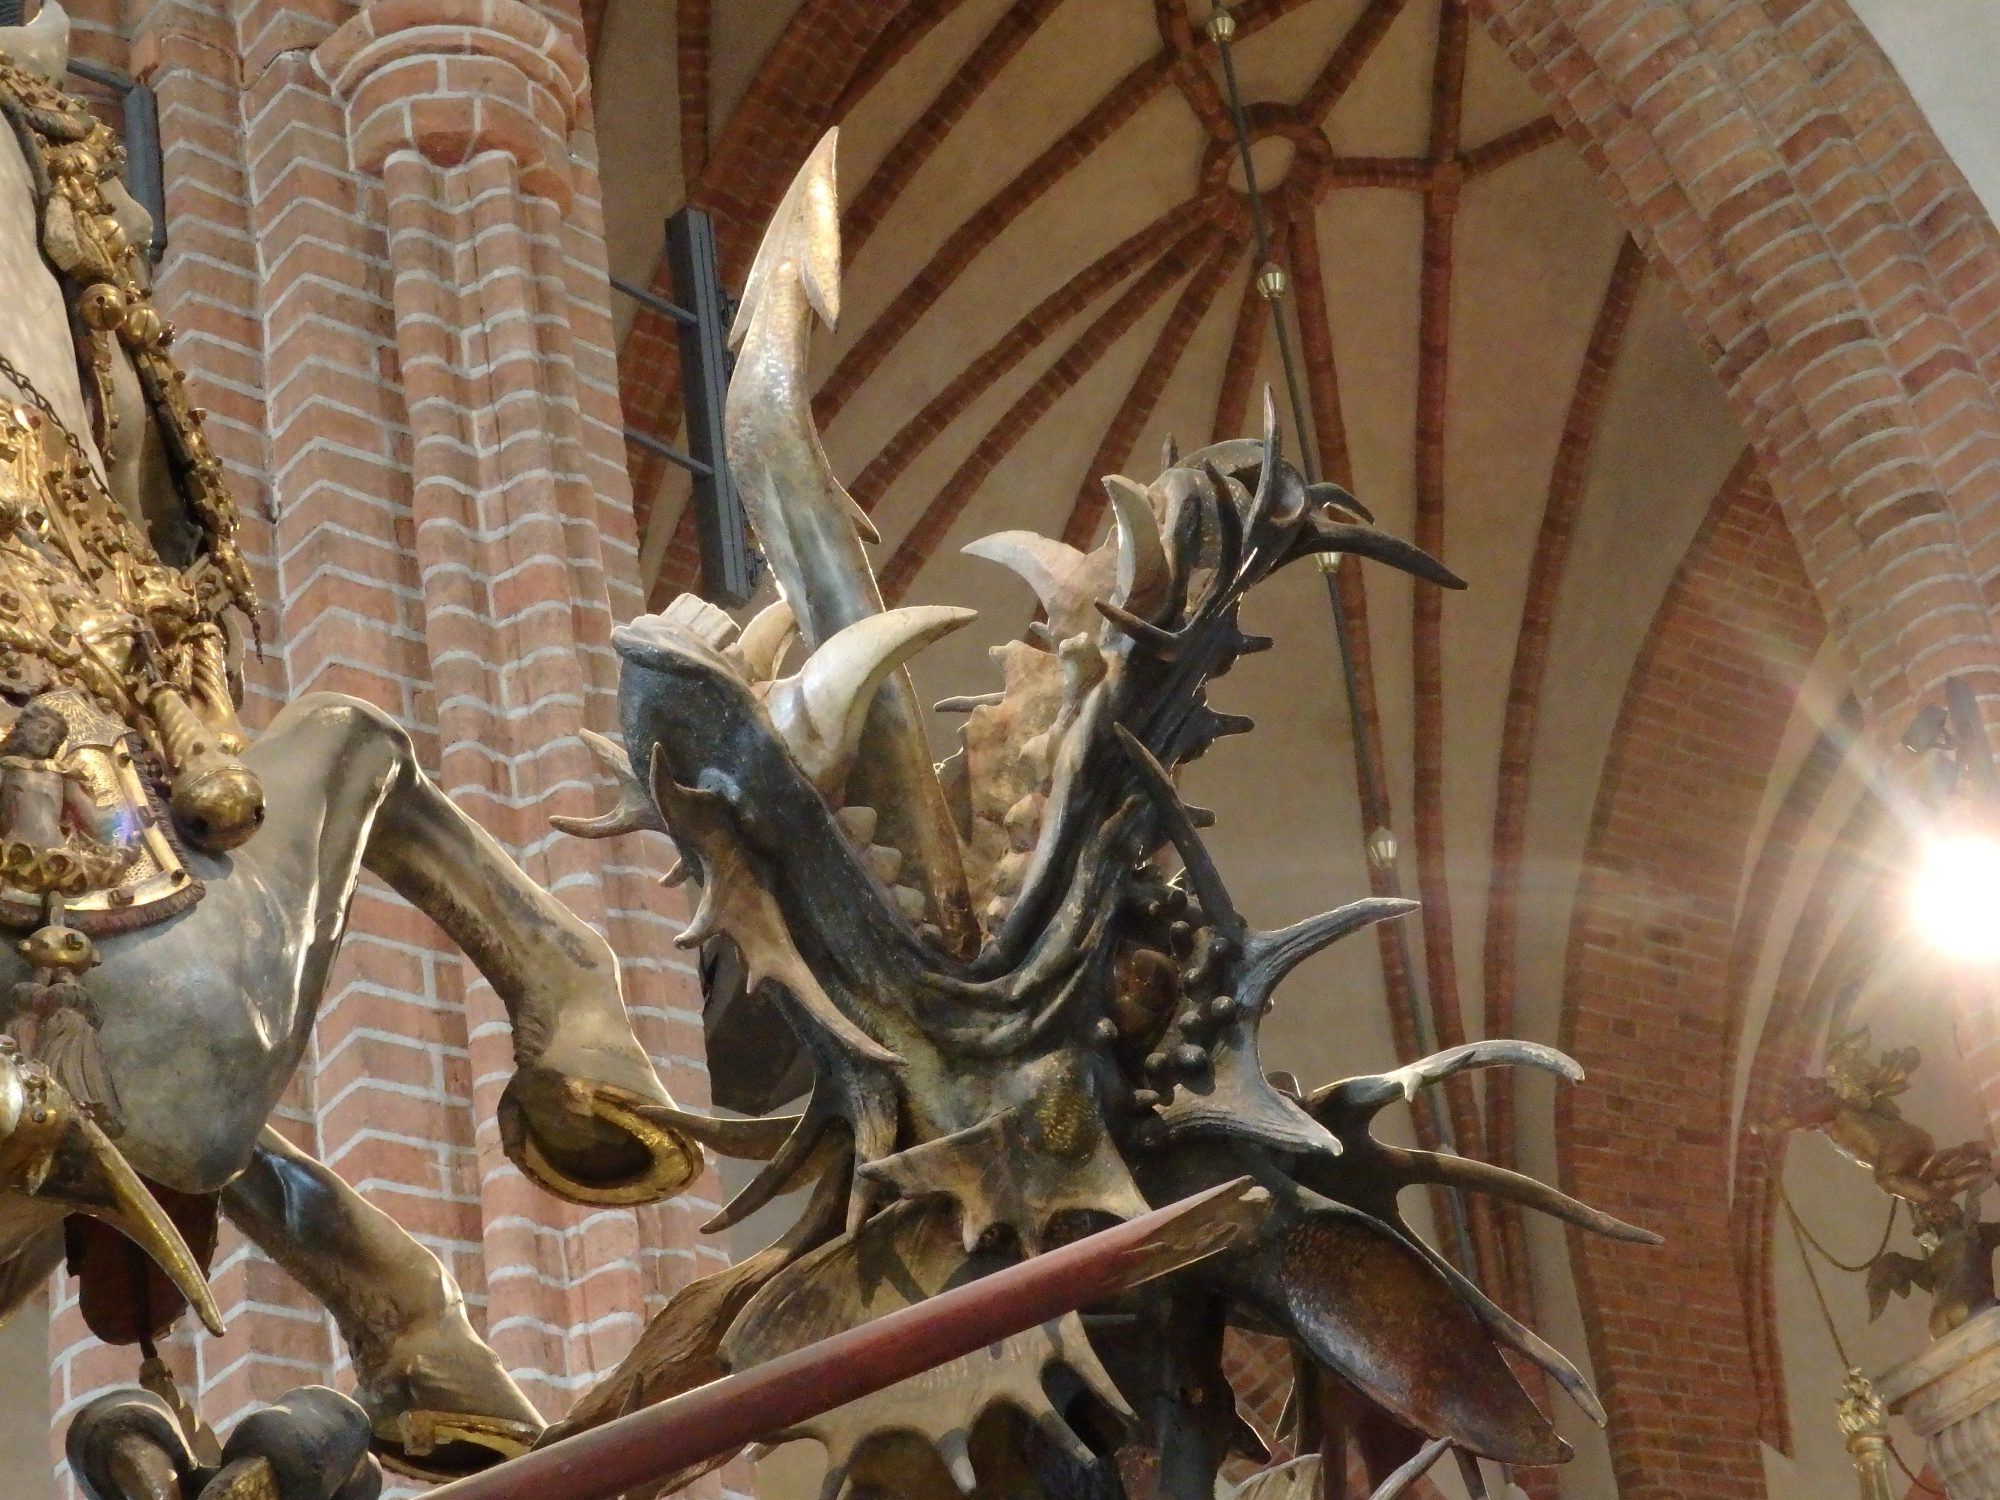 a detail of the statue of St George in Storkyrkan showing the dragon's head: Stockholm, Sweden